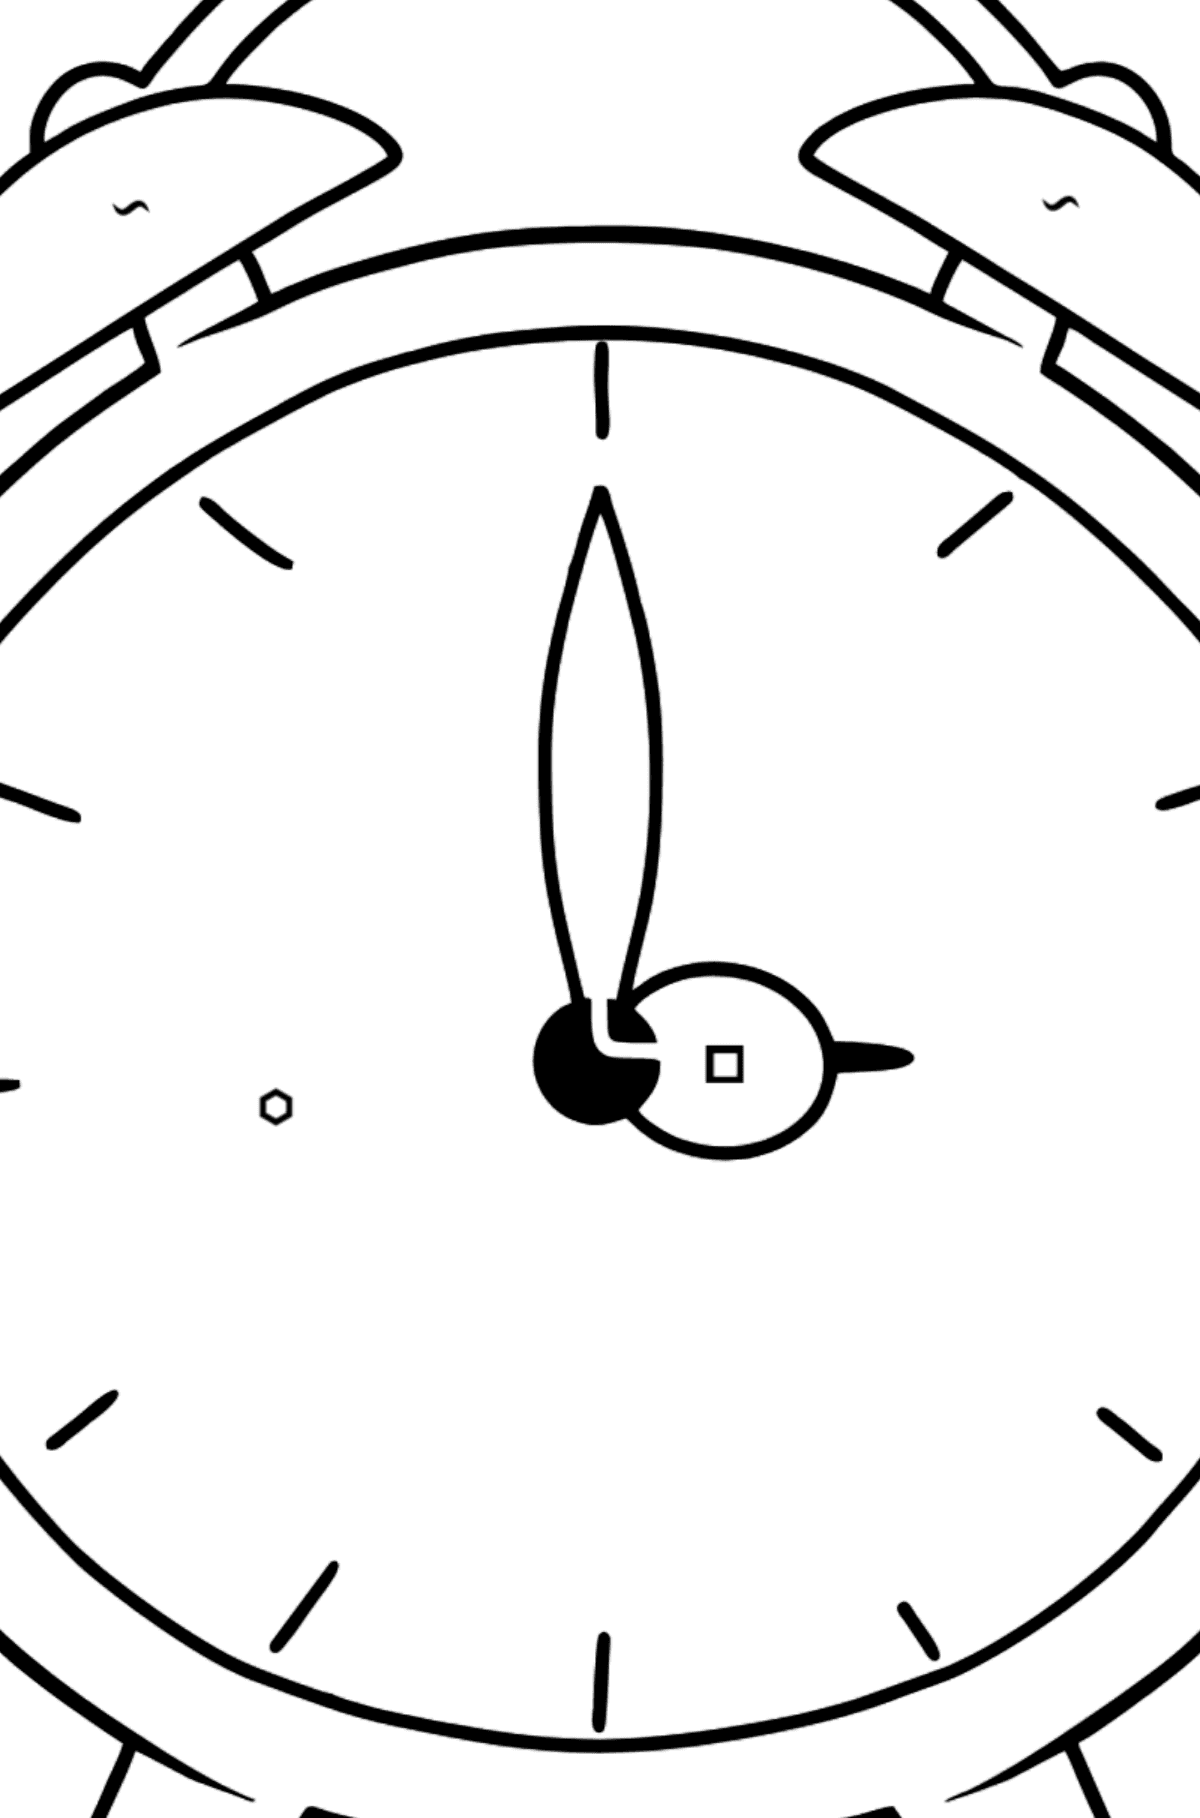 Alarm Clock coloring page - Coloring by Symbols and Geometric Shapes for Kids